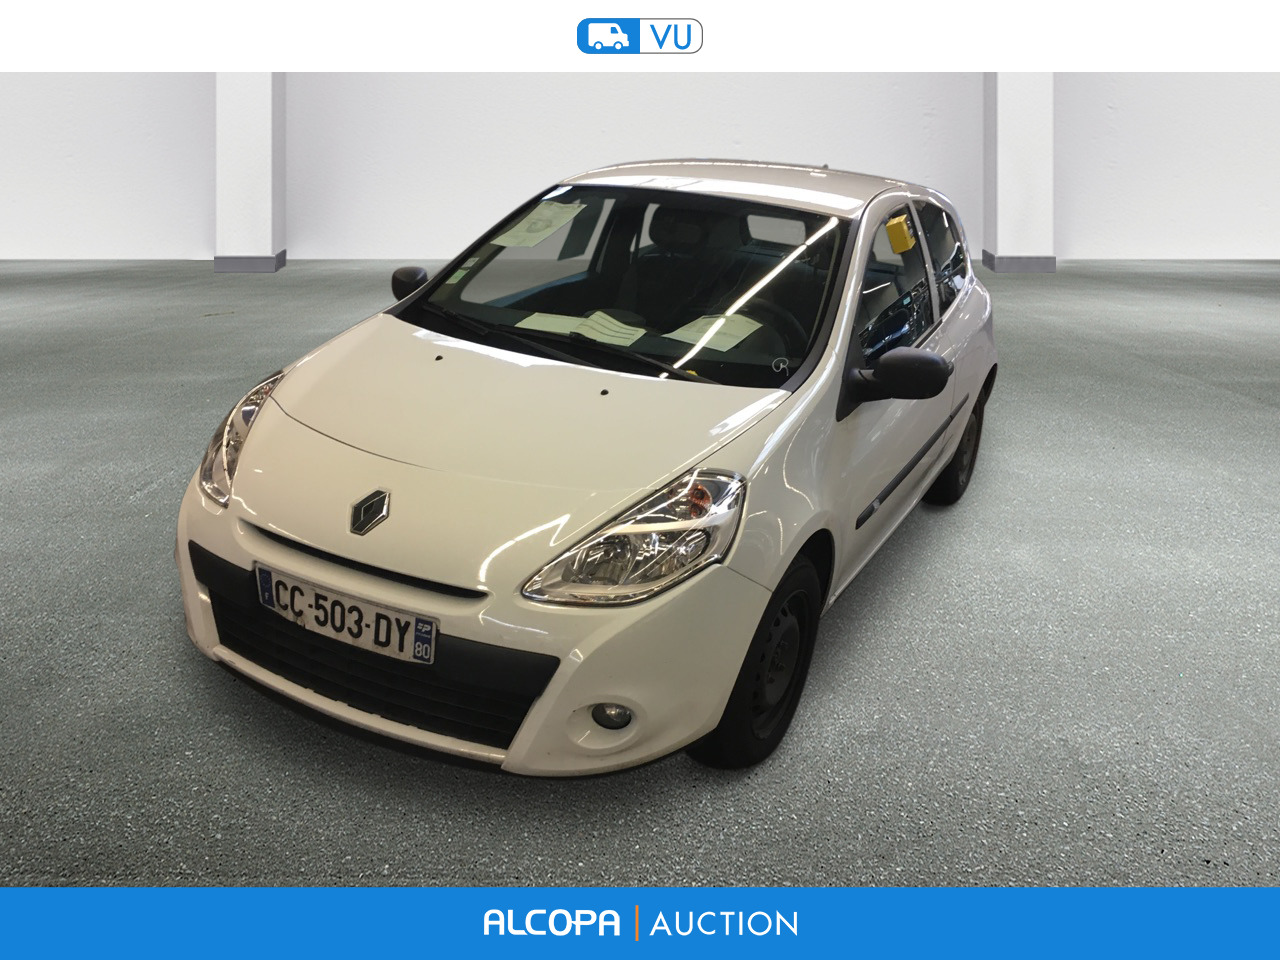 renault clio clio ste 1 5 dci 75 eco air beauvais alcopa auction. Black Bedroom Furniture Sets. Home Design Ideas